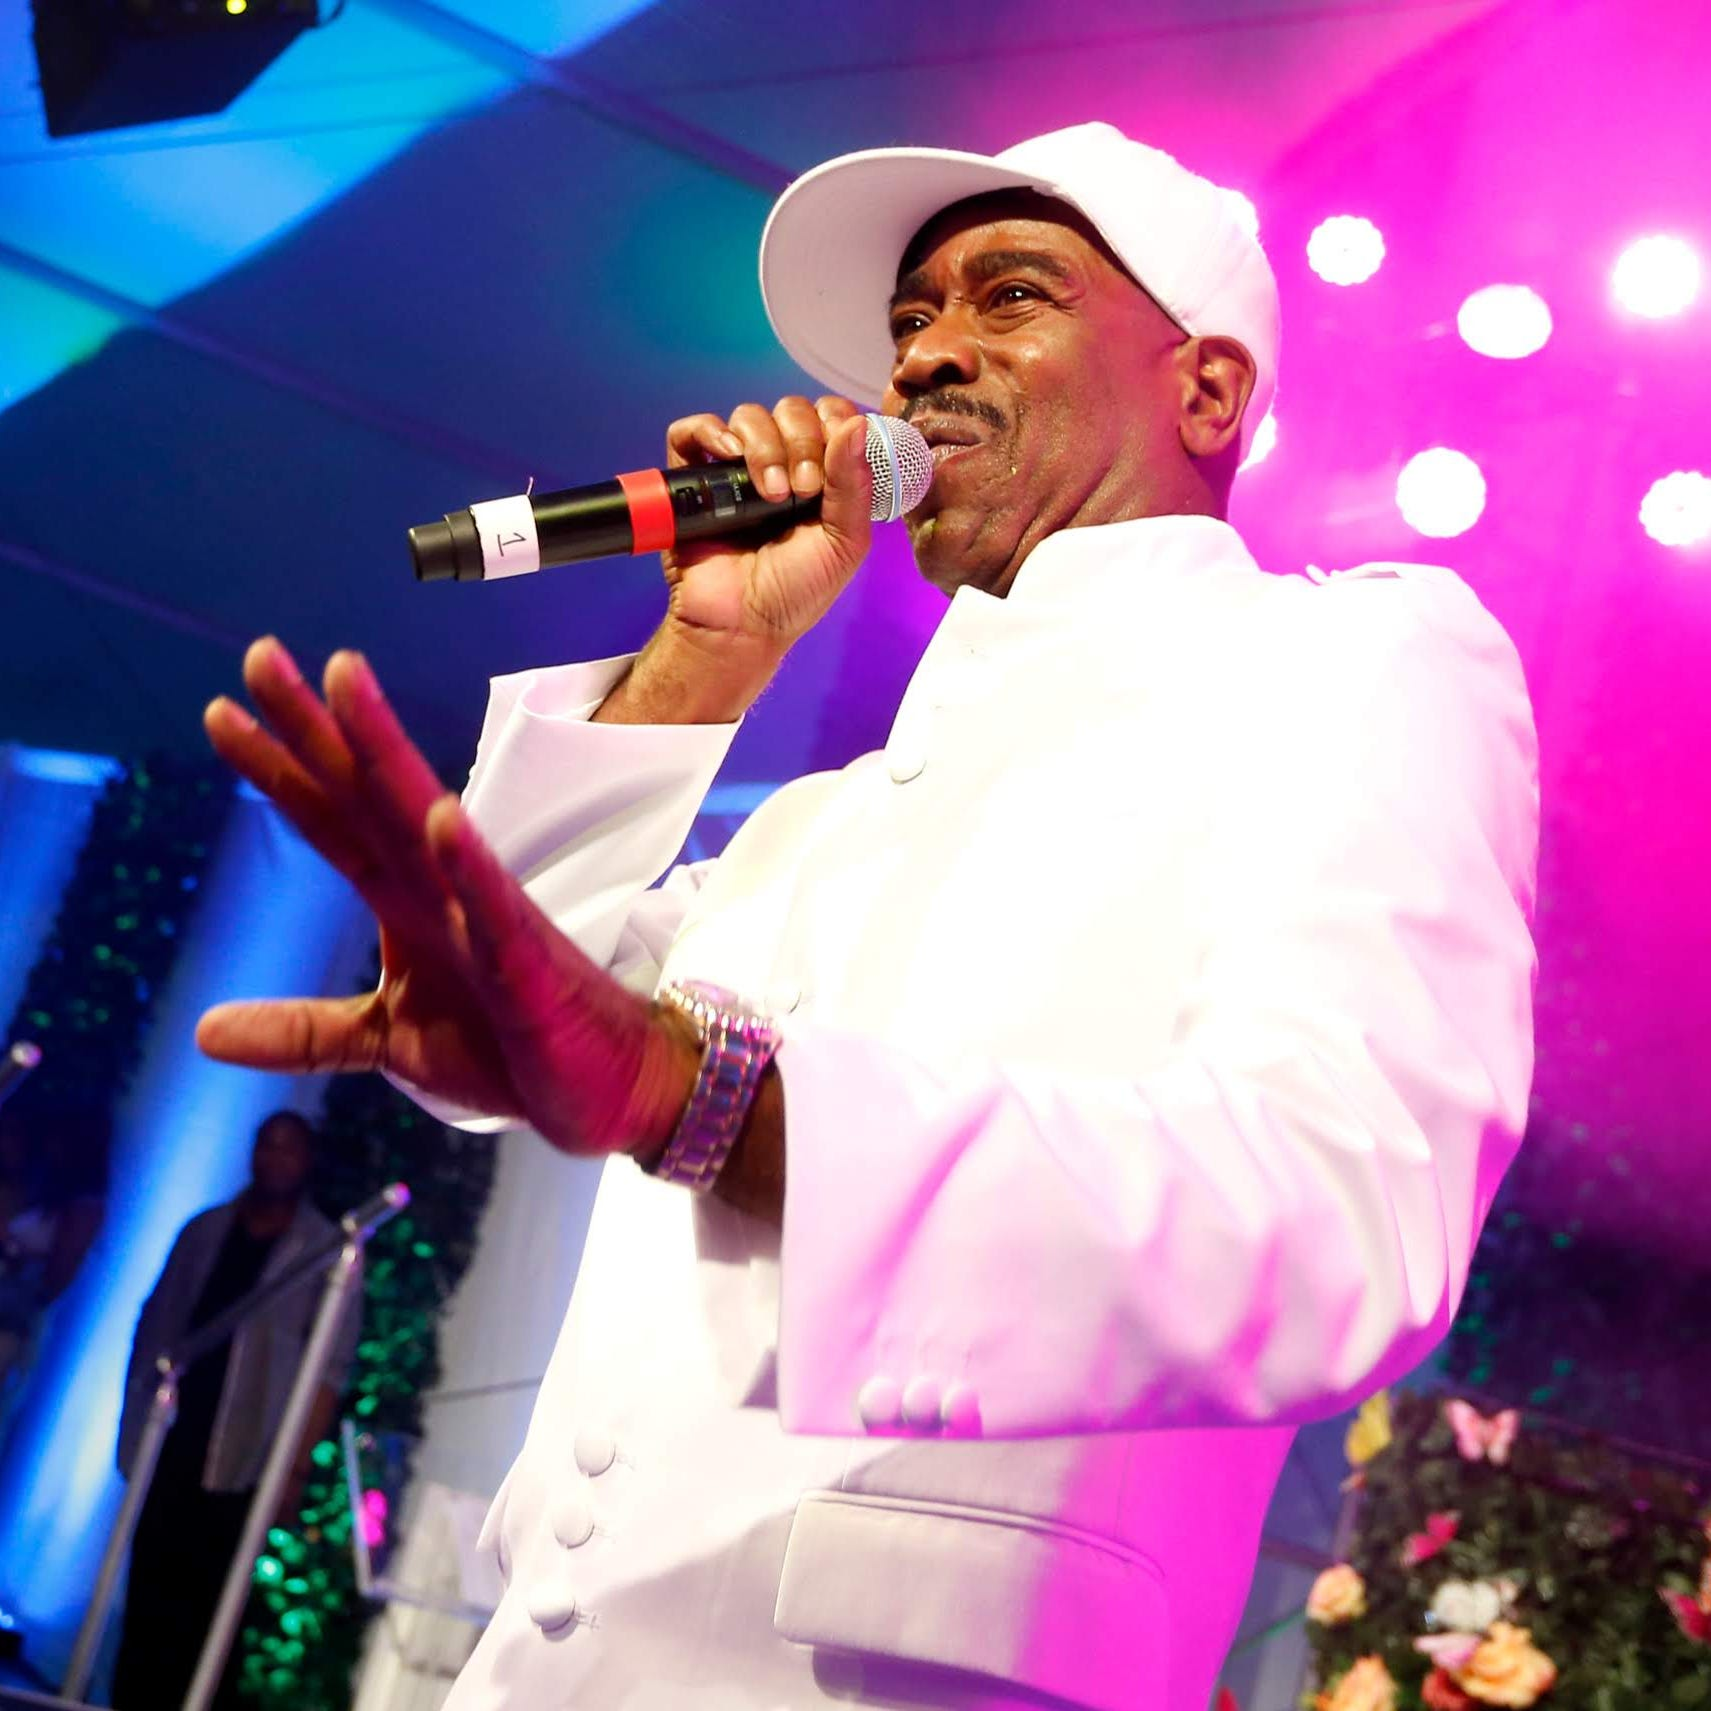 Kurtis Blow says Queen's 'Another One Bites the Dust' followed lead of his Christmas rap